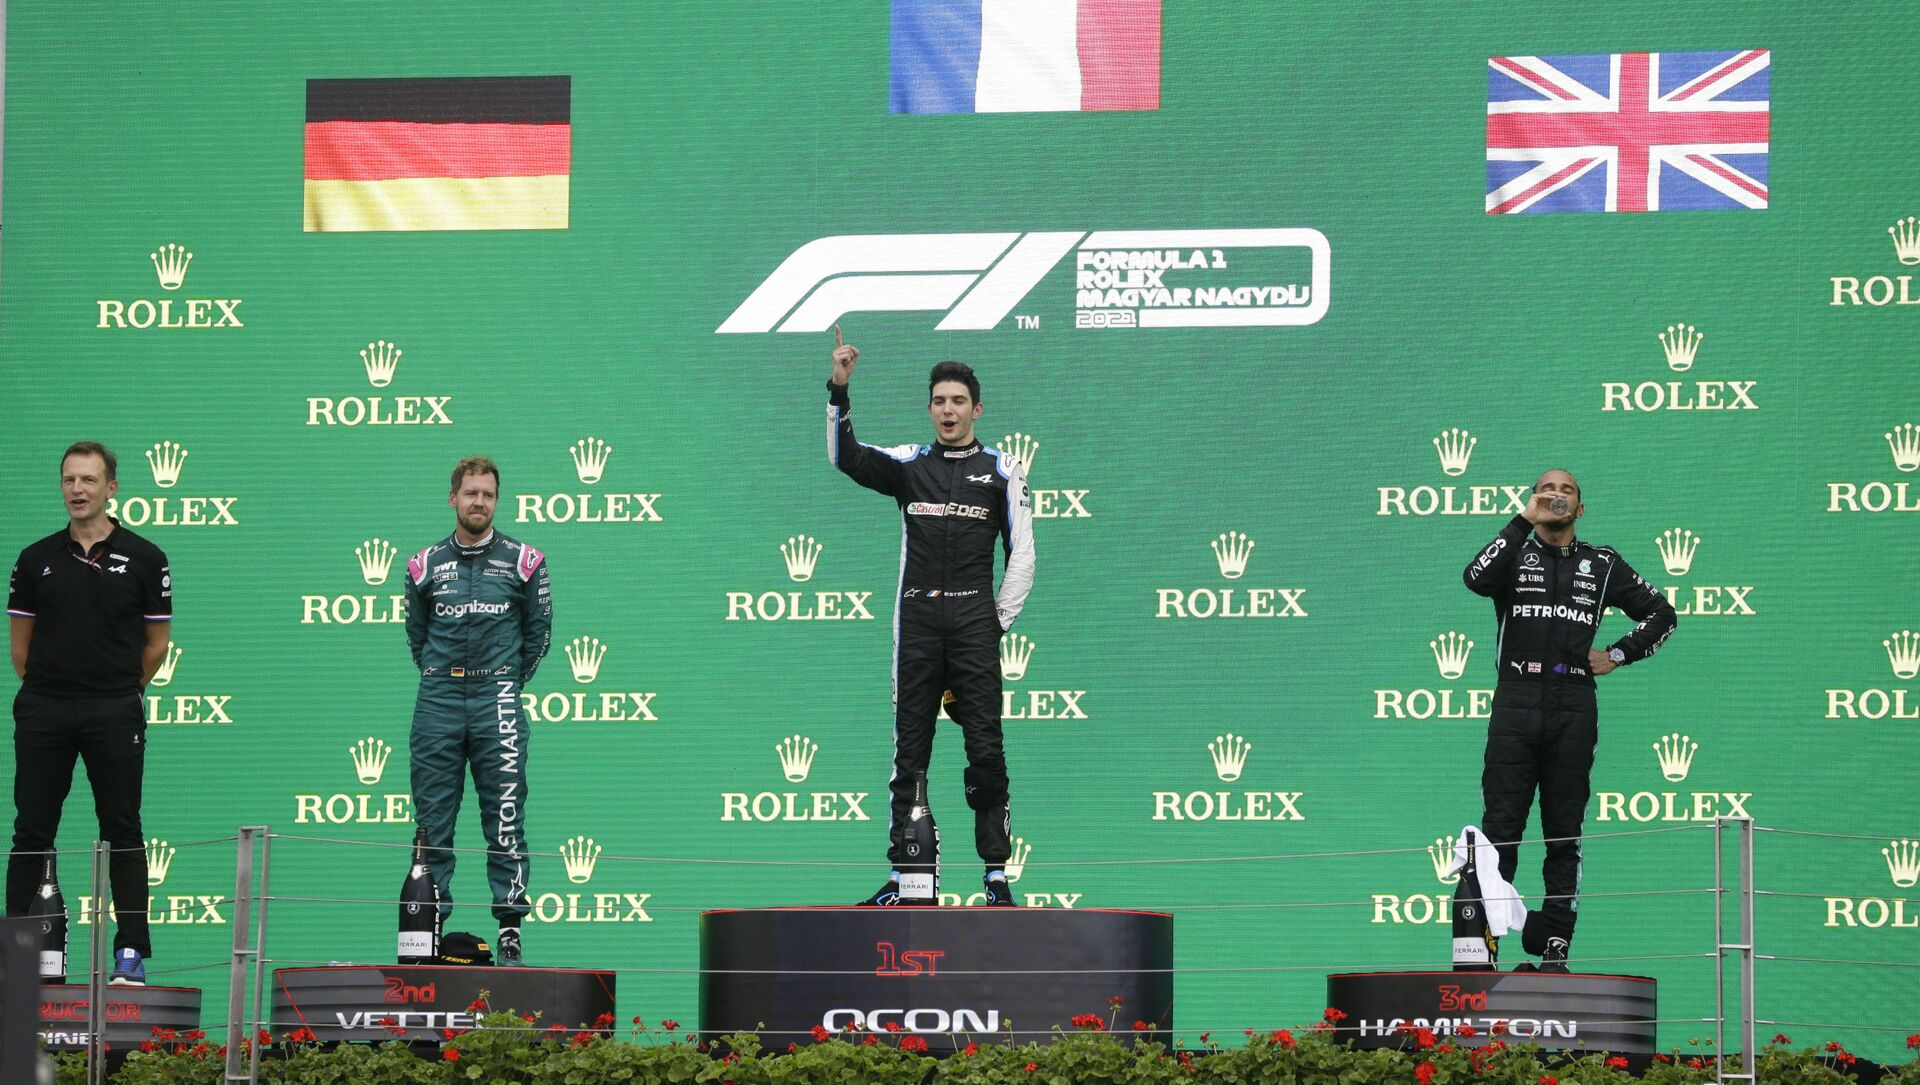 Formula One F1 - Hungarian Grand Prix - Hungaroring, Budapest, Hungary - August 1, 2021 Second placed Sebastian Vettel of Aston Martin, first placed Esteban Ocon of Alpine and third placed Lewis Hamilton of Mercedes on the podium after the race  - Sputnik International, 1920, 01.08.2021